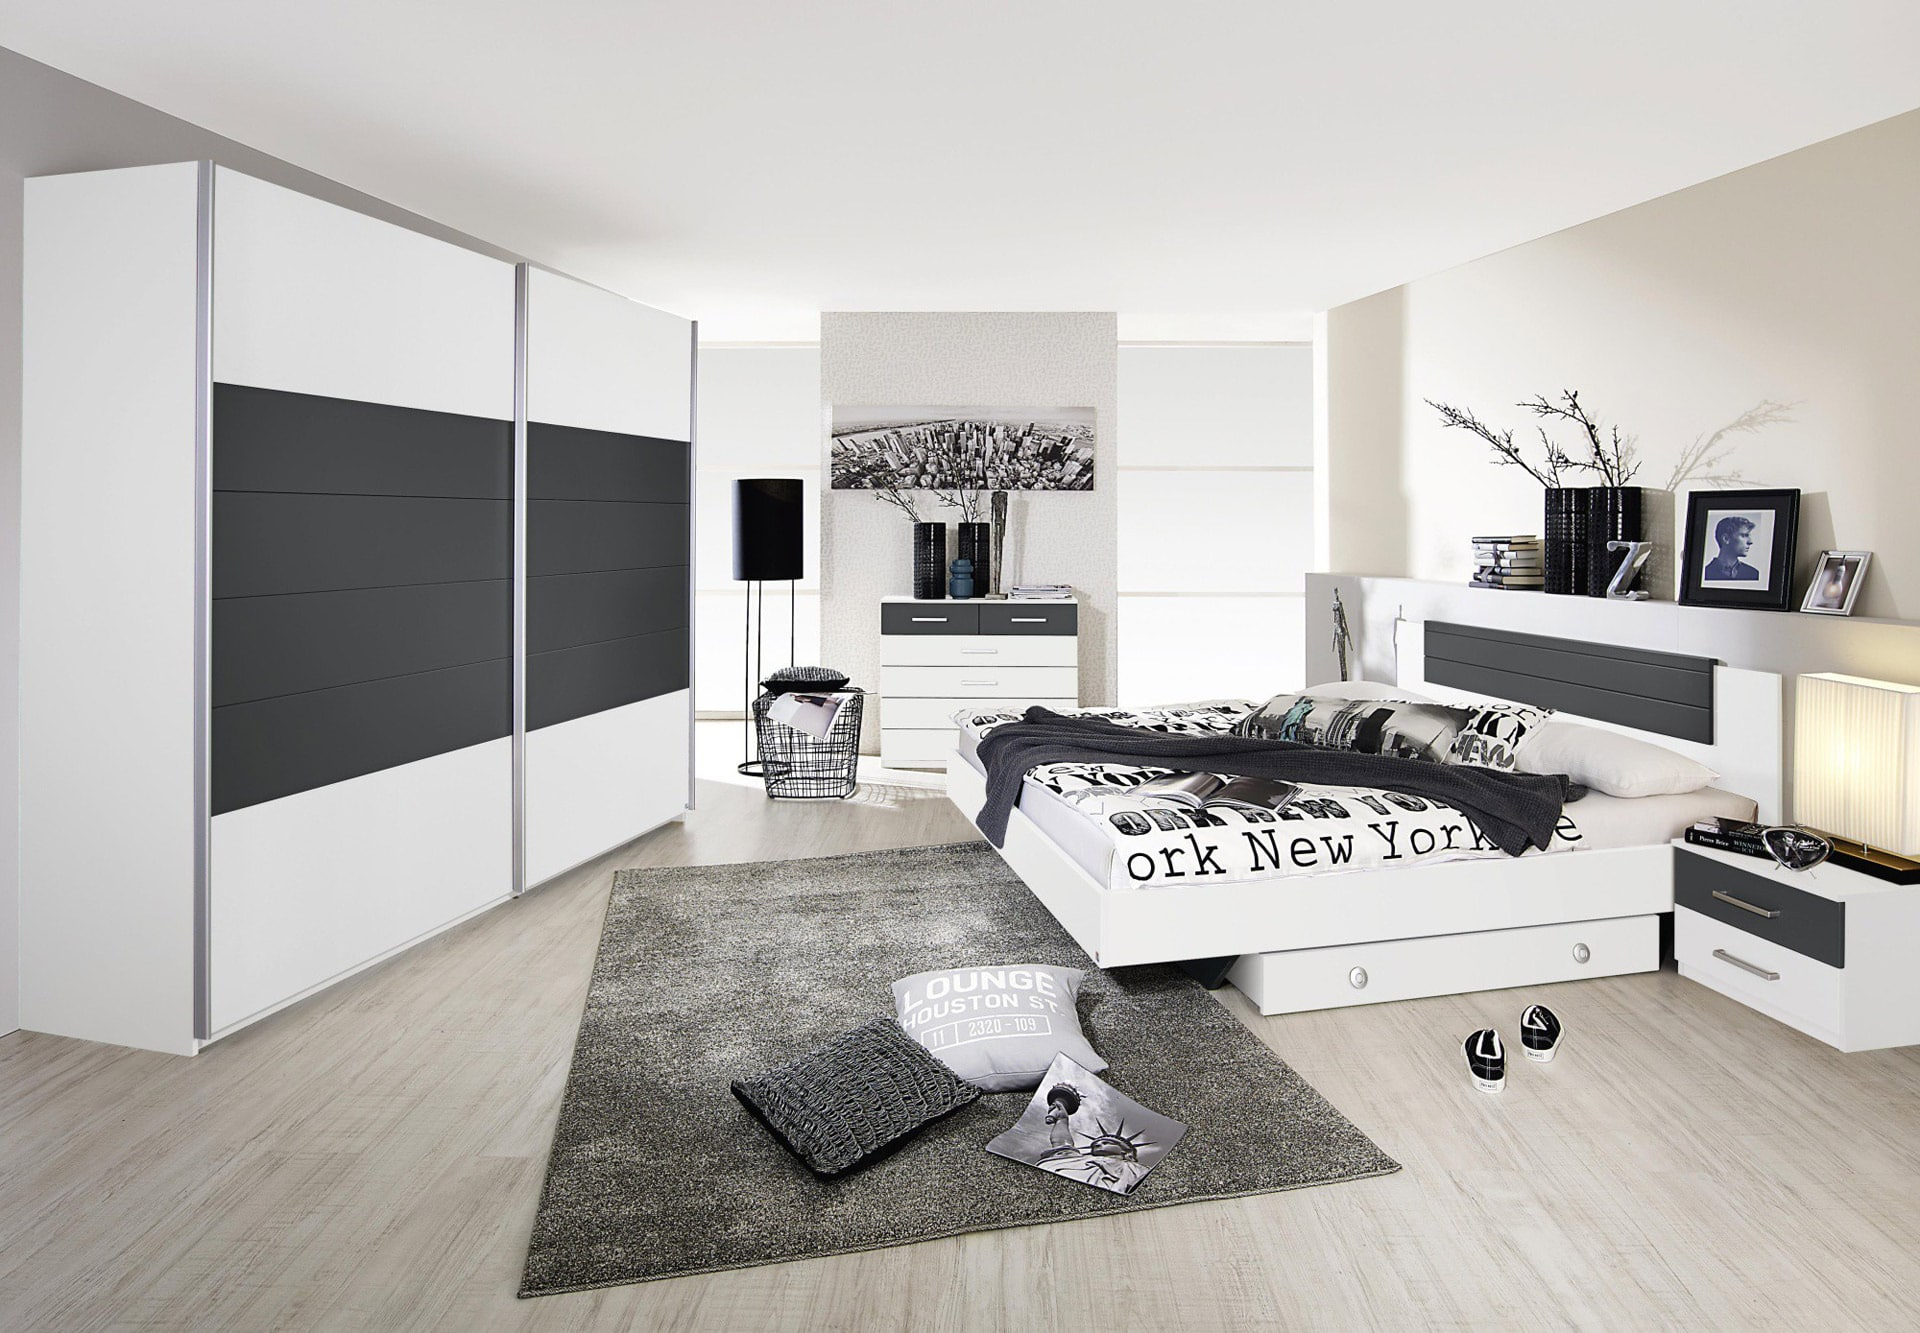 astuces rangement dans la chambre coucher. Black Bedroom Furniture Sets. Home Design Ideas